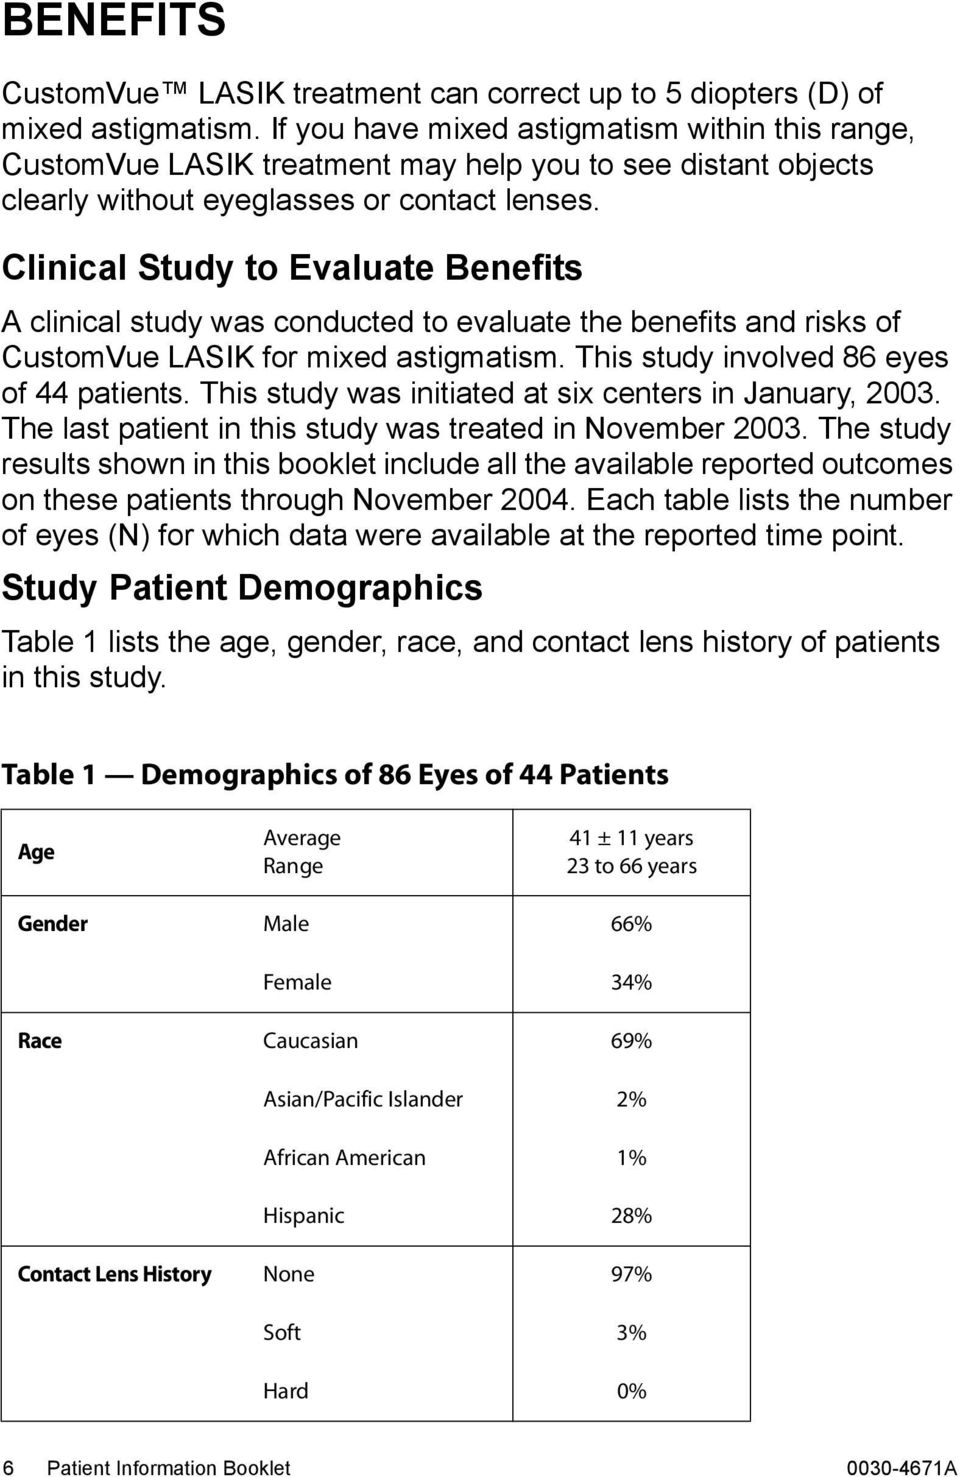 Clinical Study to Evaluate Benefits A clinical study was conducted to evaluate the benefits and risks of CustomVue LASIK for mixed astigmatism. This study involved 86 eyes of 44 patients.